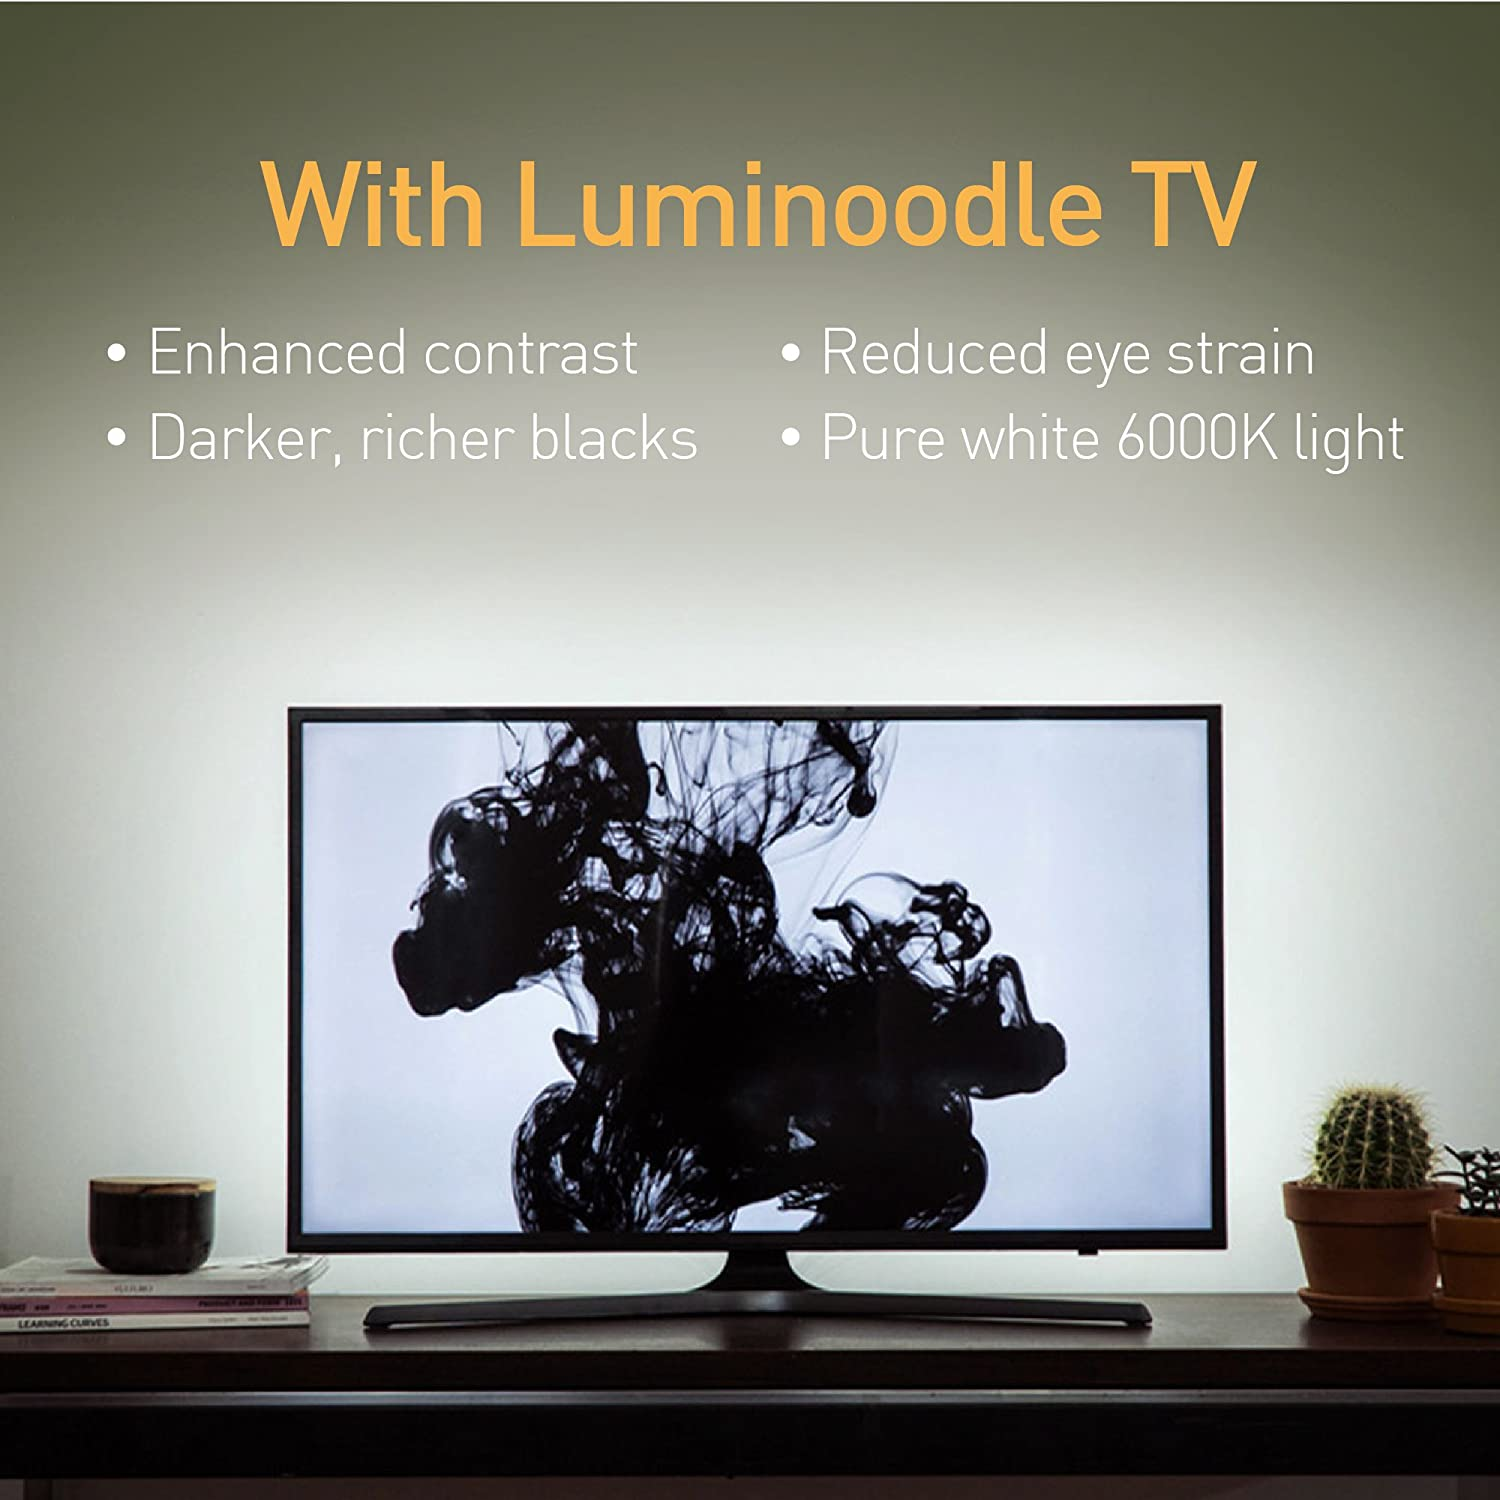 TV Accent Lighting to Reduce Eye Strain Power Practical Luminoodle USB Bias Lighting Ambient Home Theater Light LED TV Backlight Strip Improve Contrast 13 FT X-Large 4 Meter